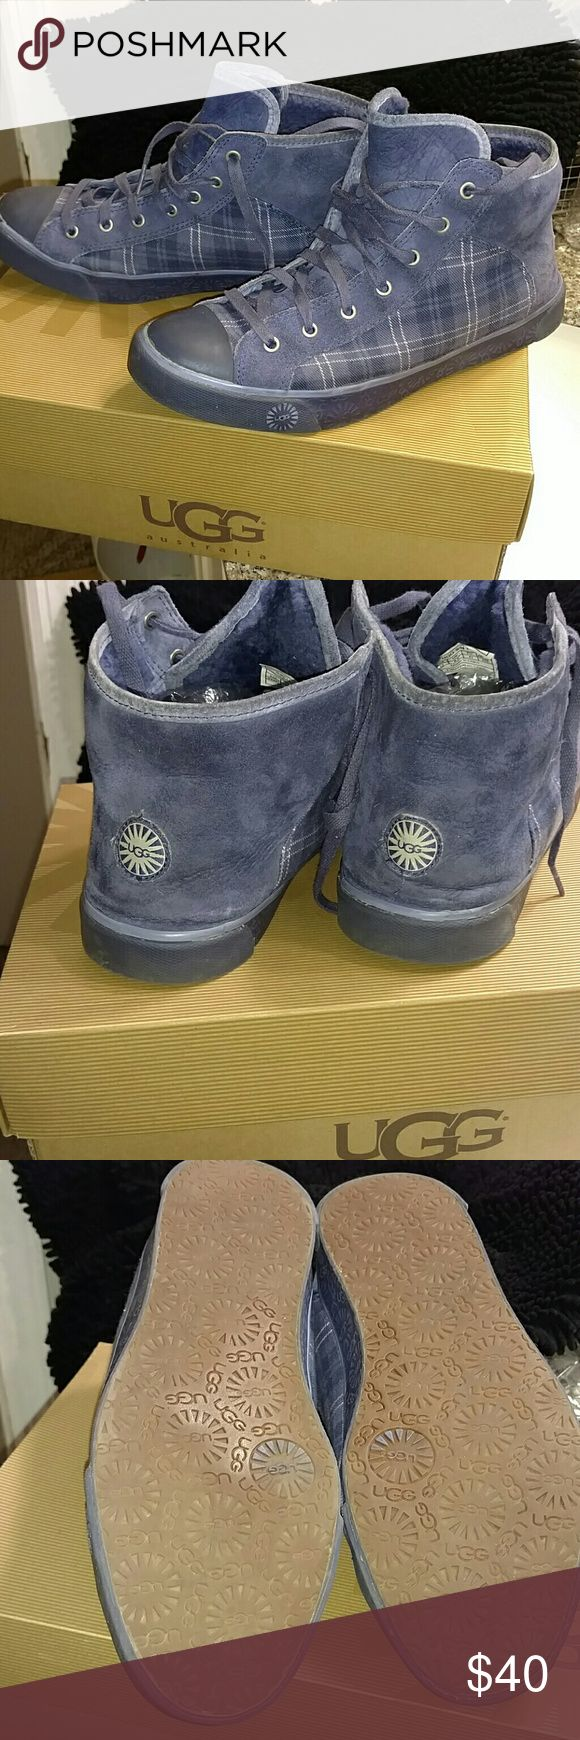 Ugg Sneaker Blue Plaid Hi top Ugg Sneaker Blue Plaid Hi top. Navy Blue and white plaid Ugg Sneakers. Supper comfortable.  In box. UGG Shoes Sneakers